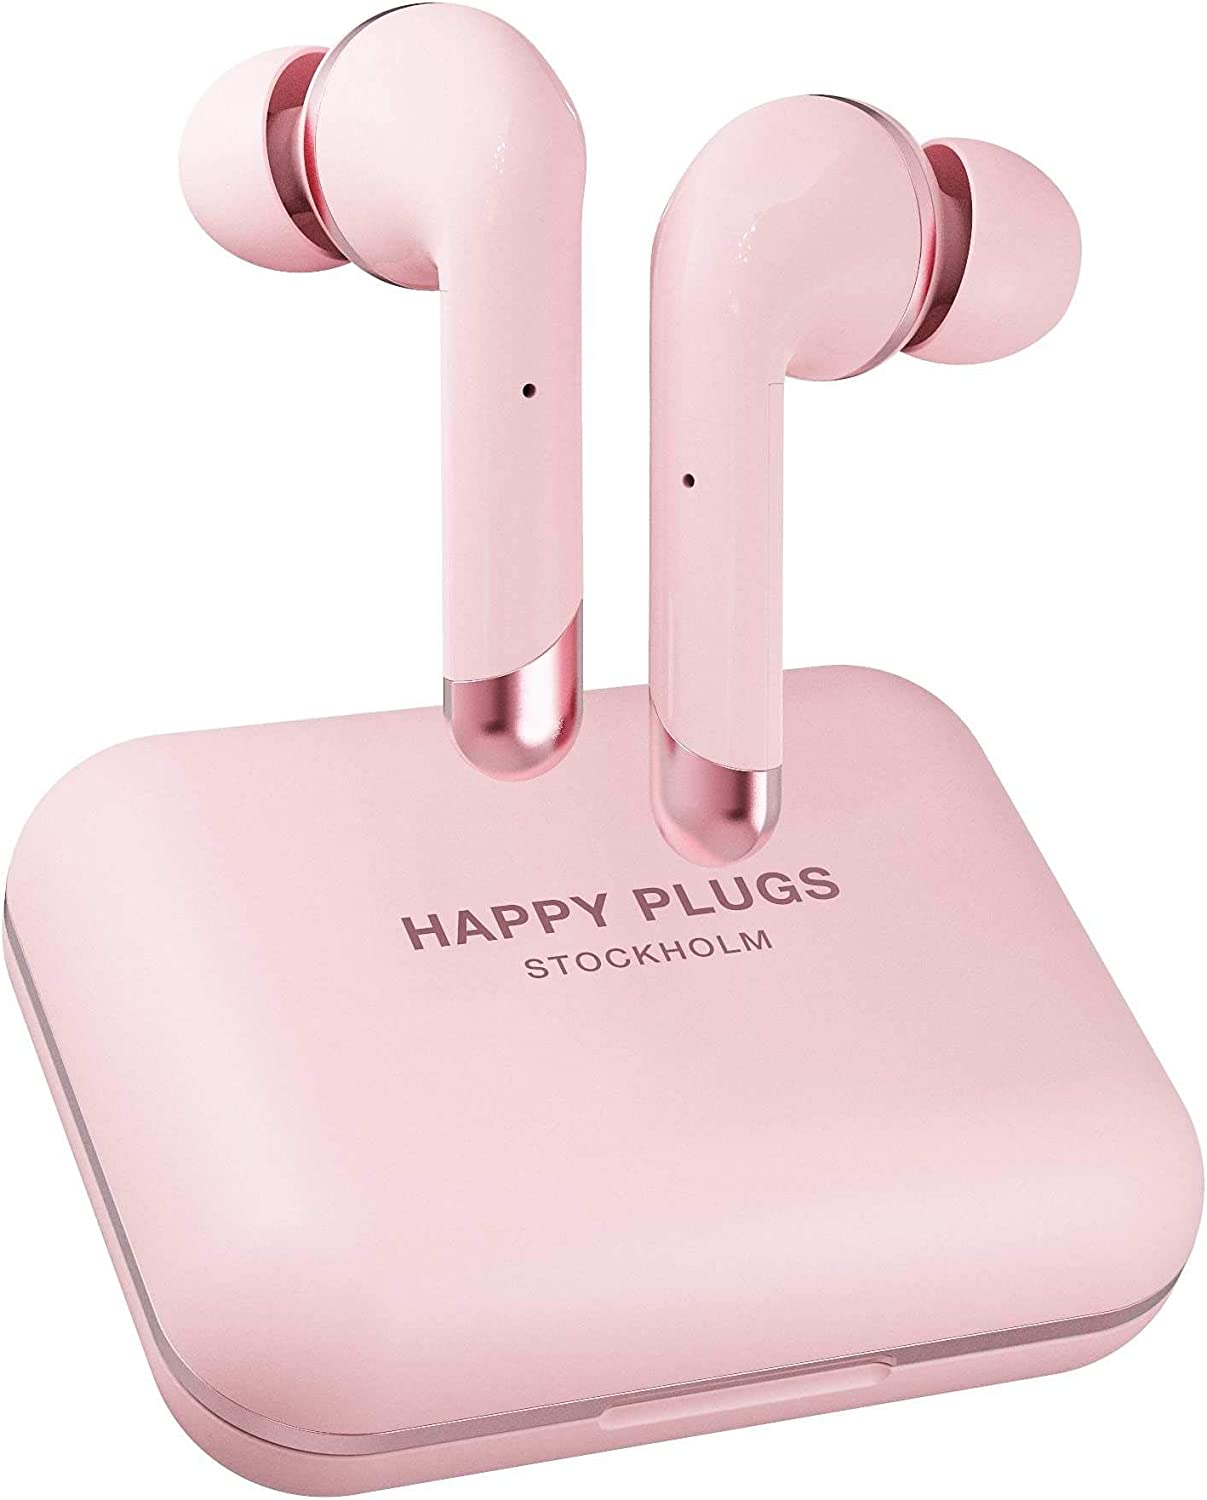 Happy Plugs Air 1 Plus High-end in-Ear Headphones   True Wireless Bluetooth Earbuds with Charging Case and Microphones   Up to 40 Hours Playtime   iOS/Android/Zoom/Pc/Mac Compatible, Pink Gold